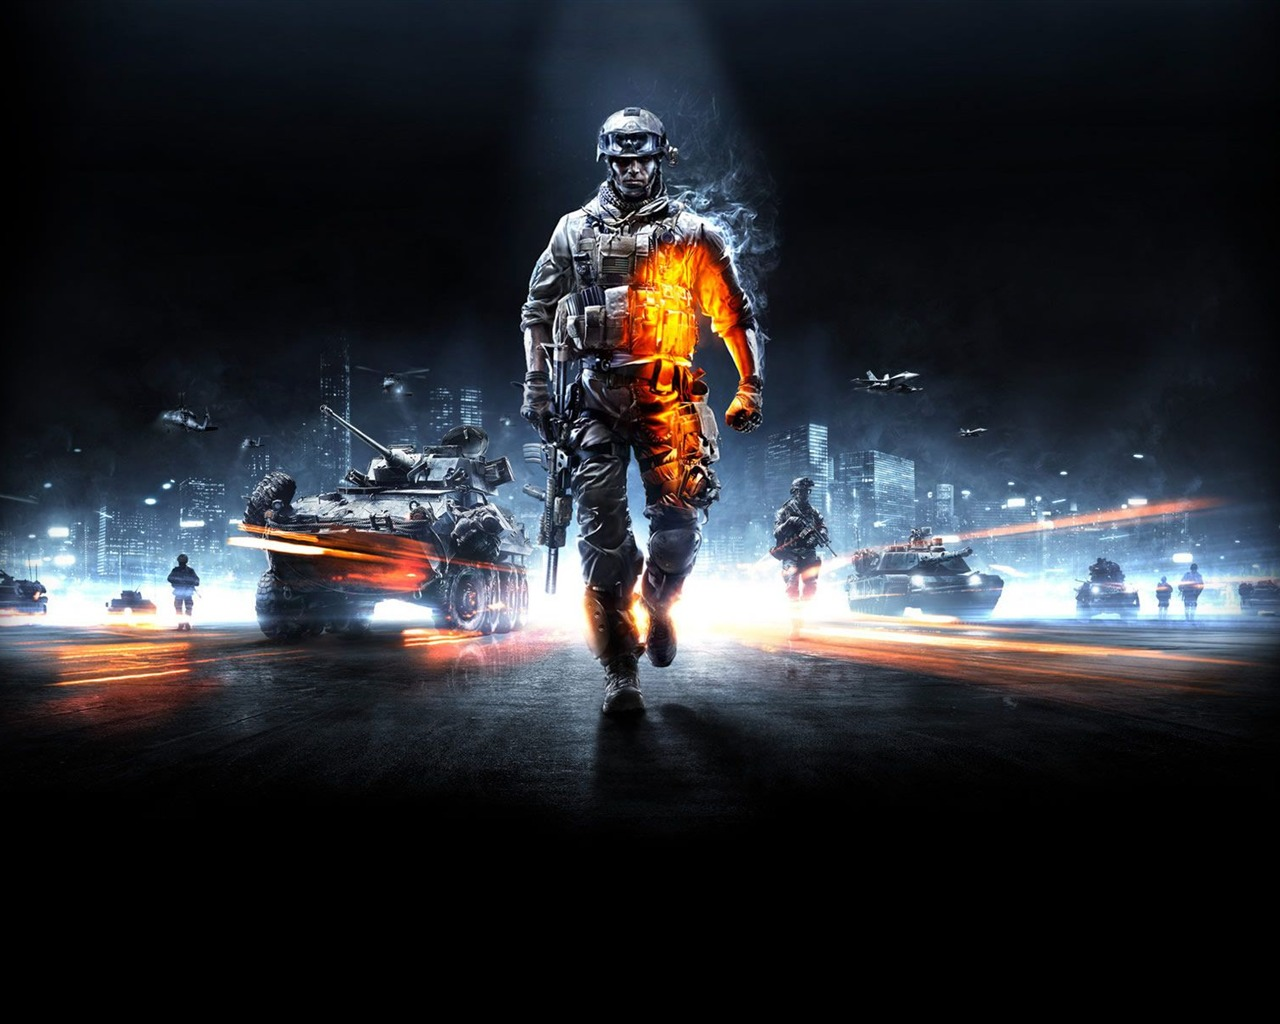 Battlefield 3 Wallpapers 4